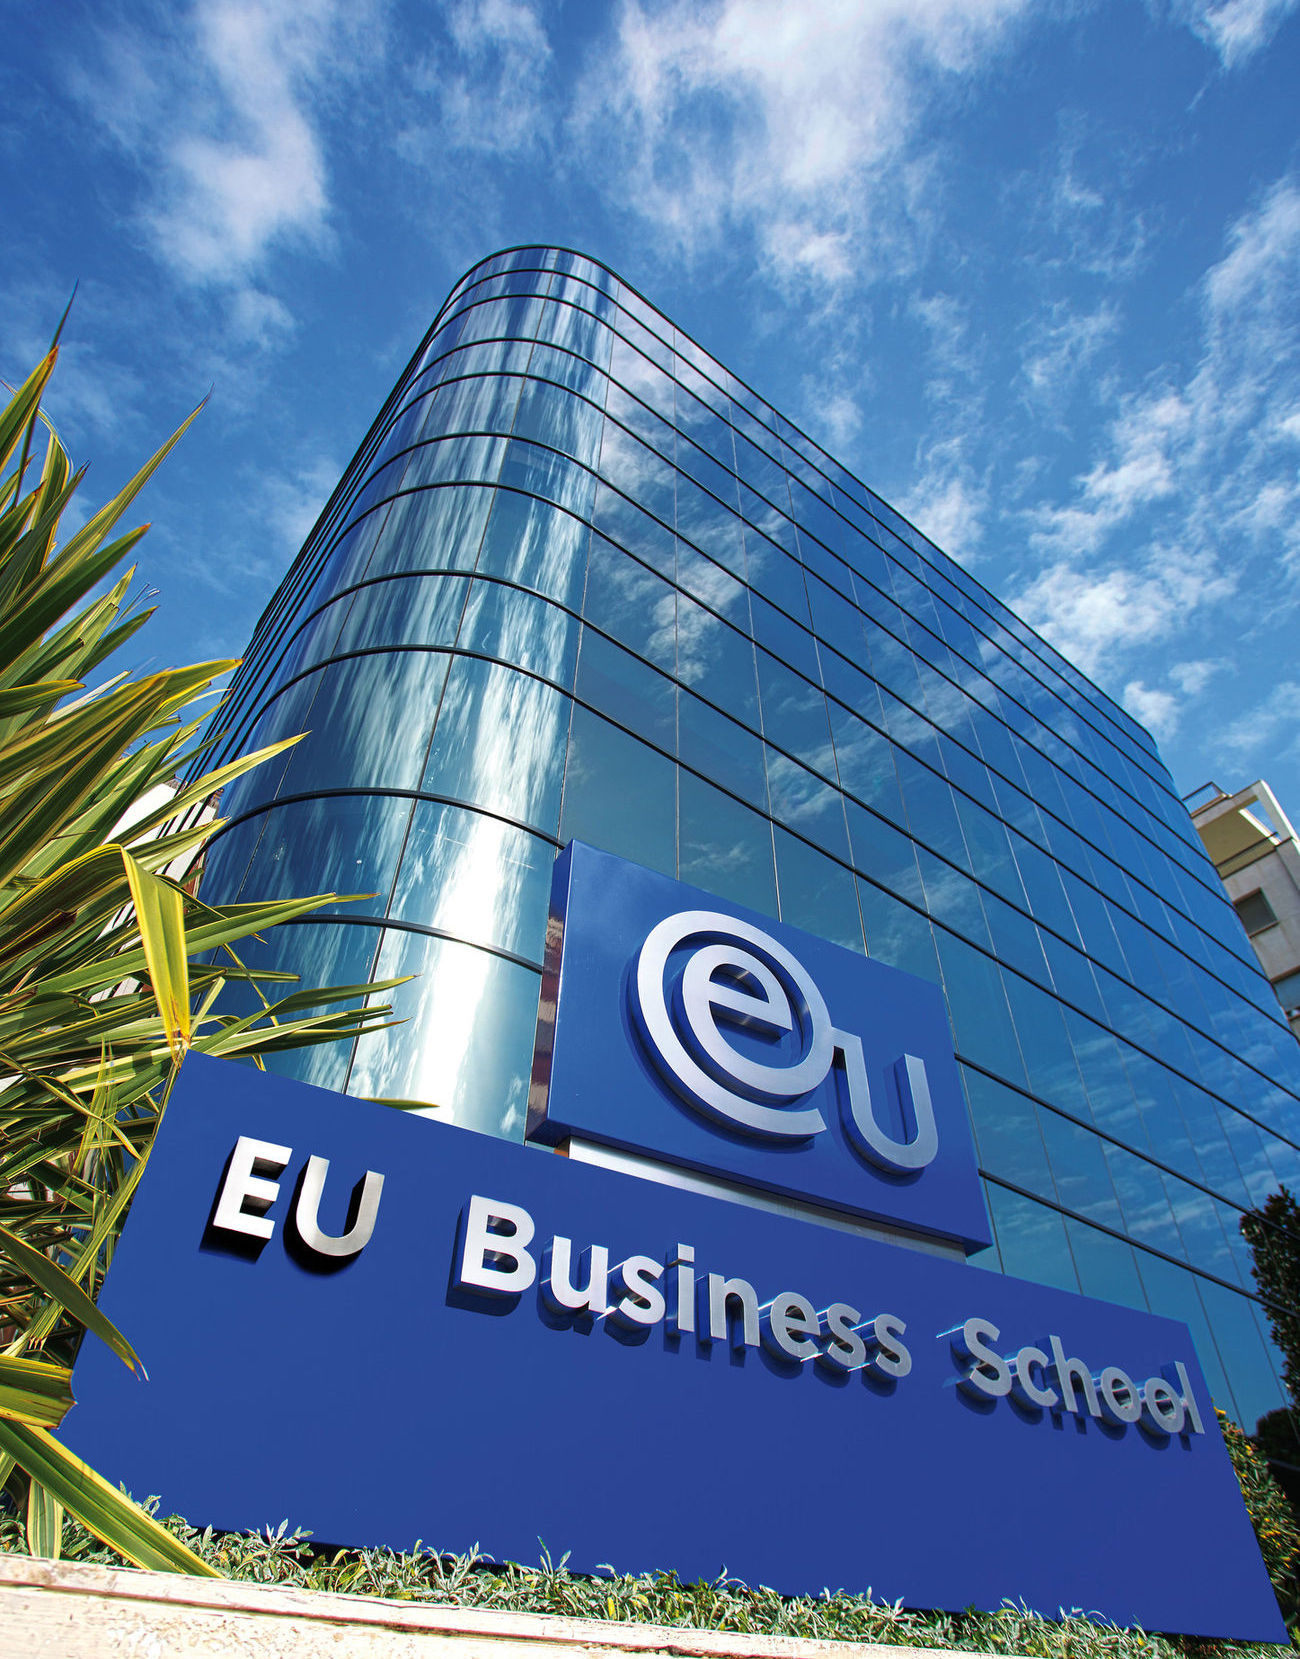 Barcelona Business School